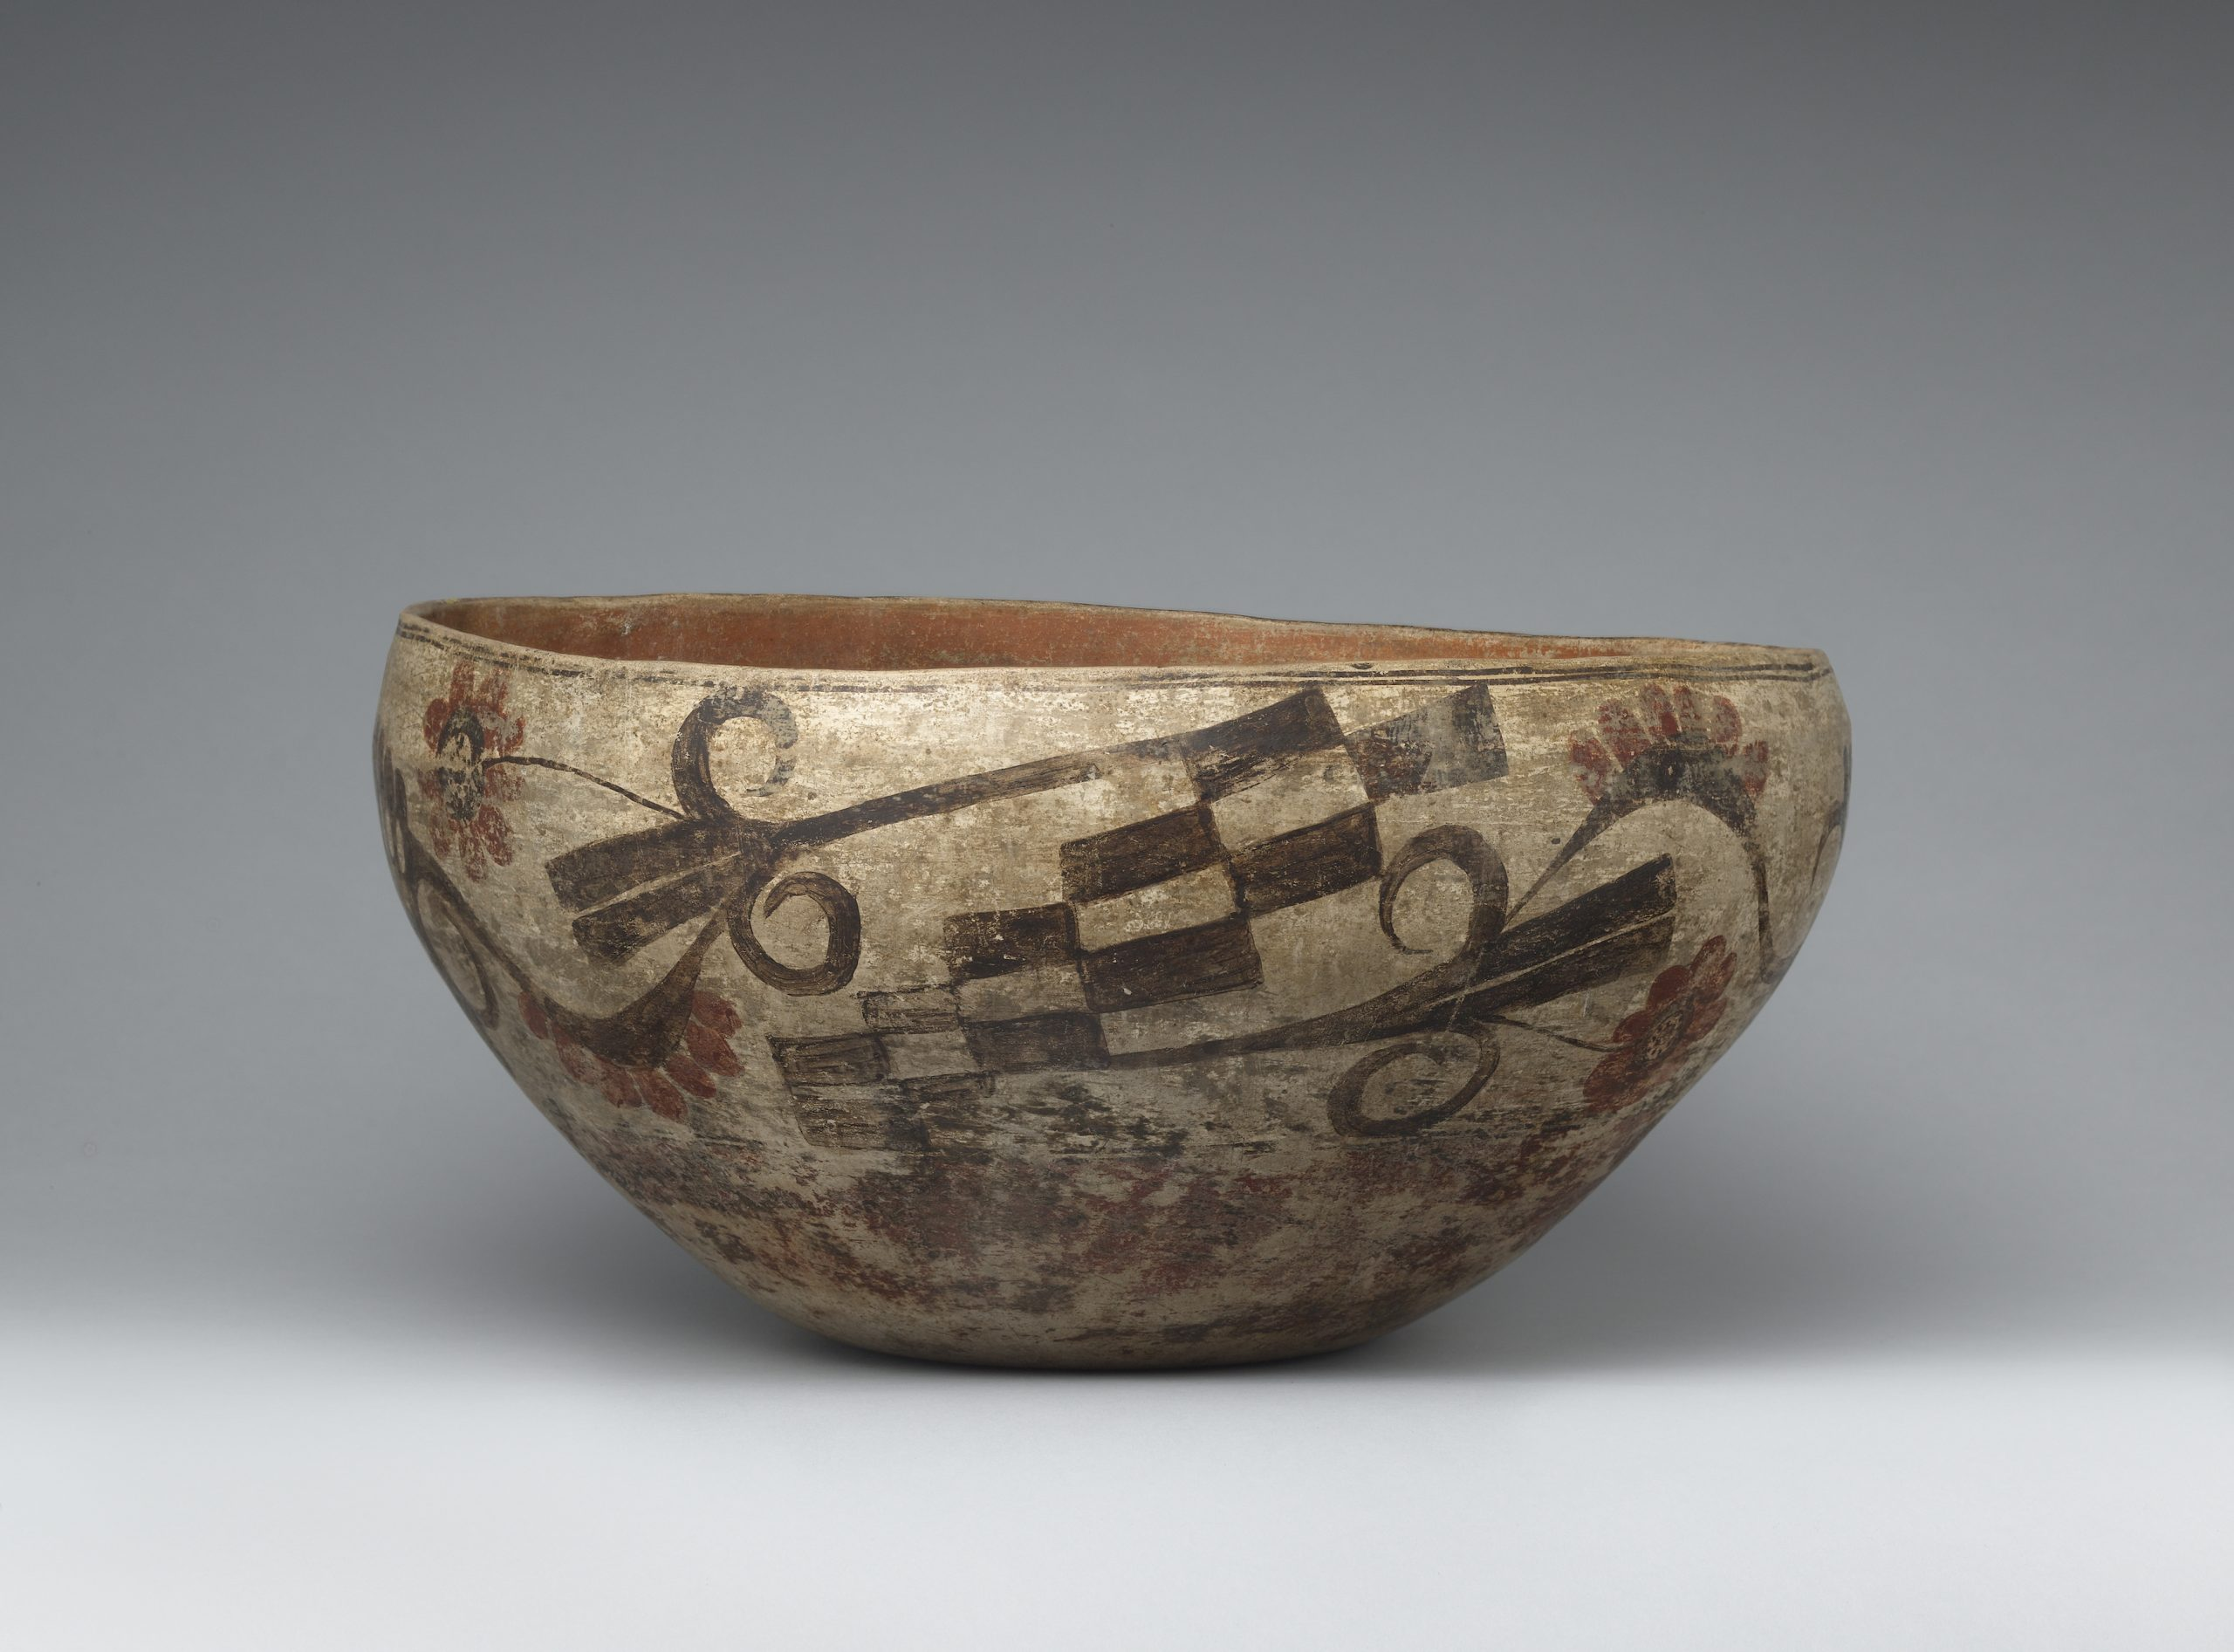 An Acoma bowl with checkered design and floral patterns in brown and red.